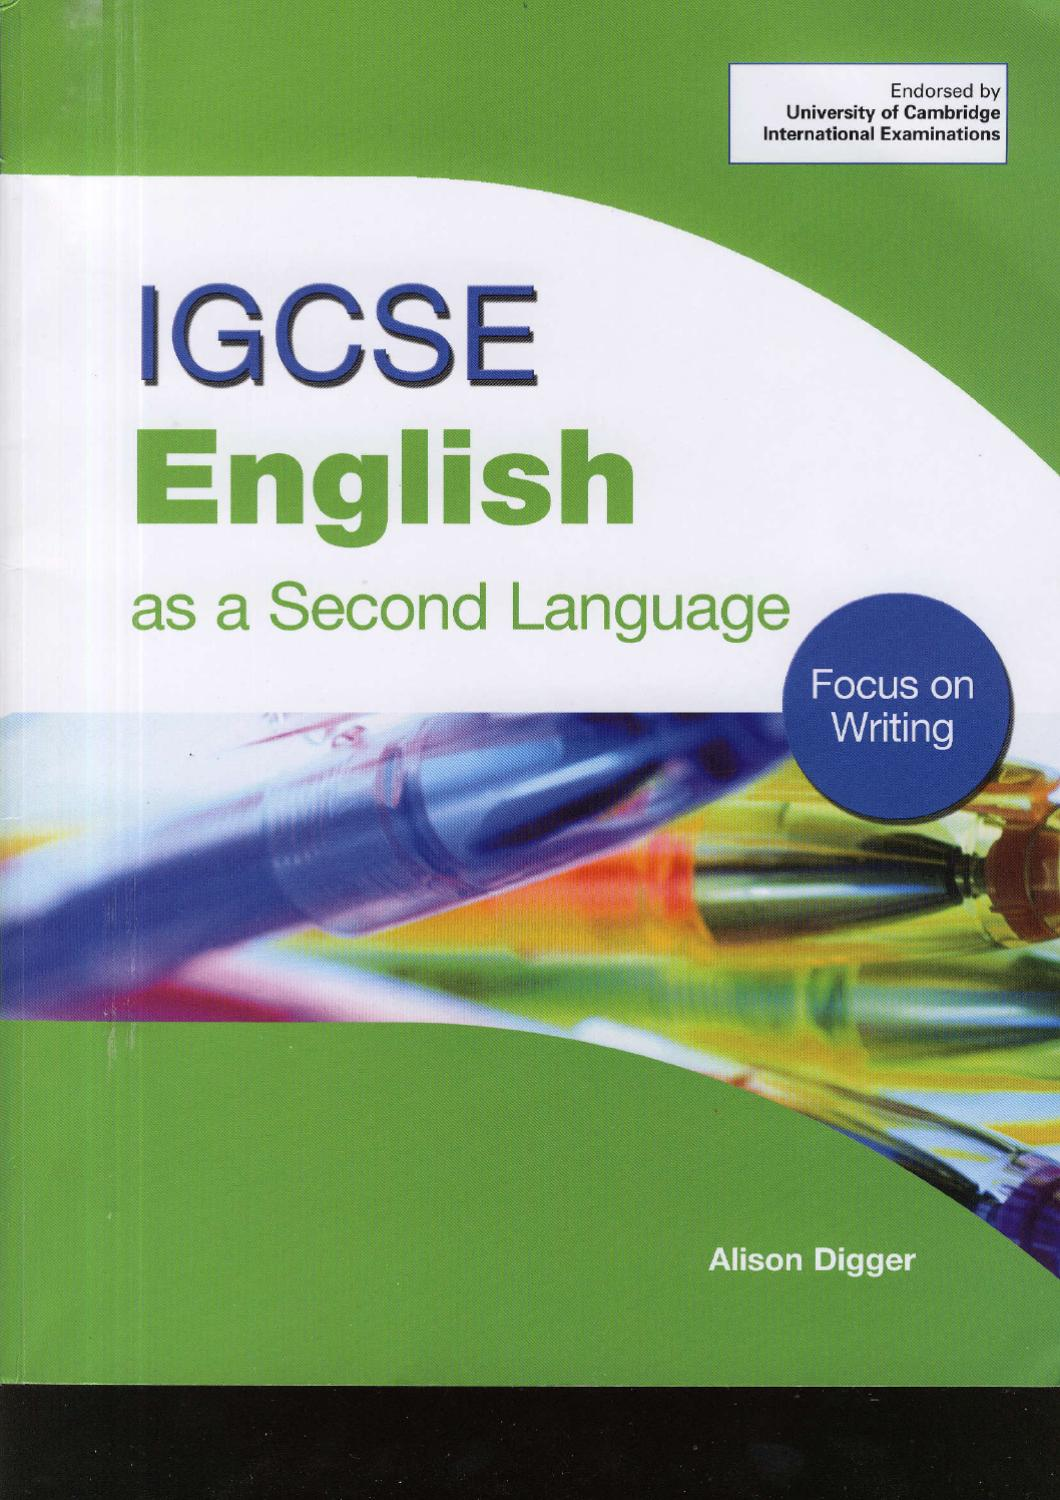 IGCSE ENGLISH AS A SECOND LANGUAJE